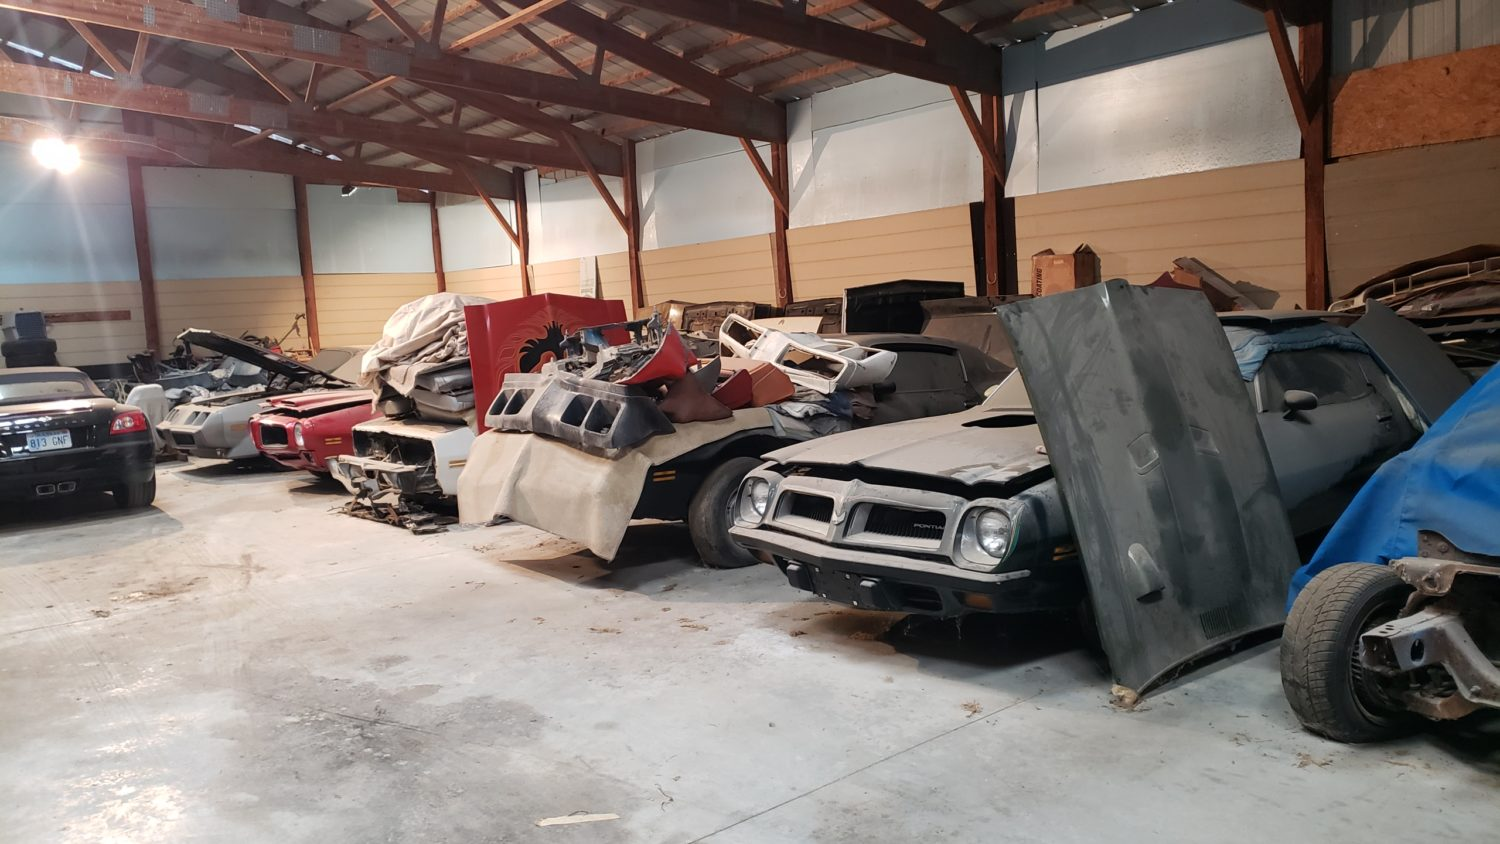 Amazing Trans Am & Pontiac Cars and Parts Hoard! The Kansas Collection - image 2